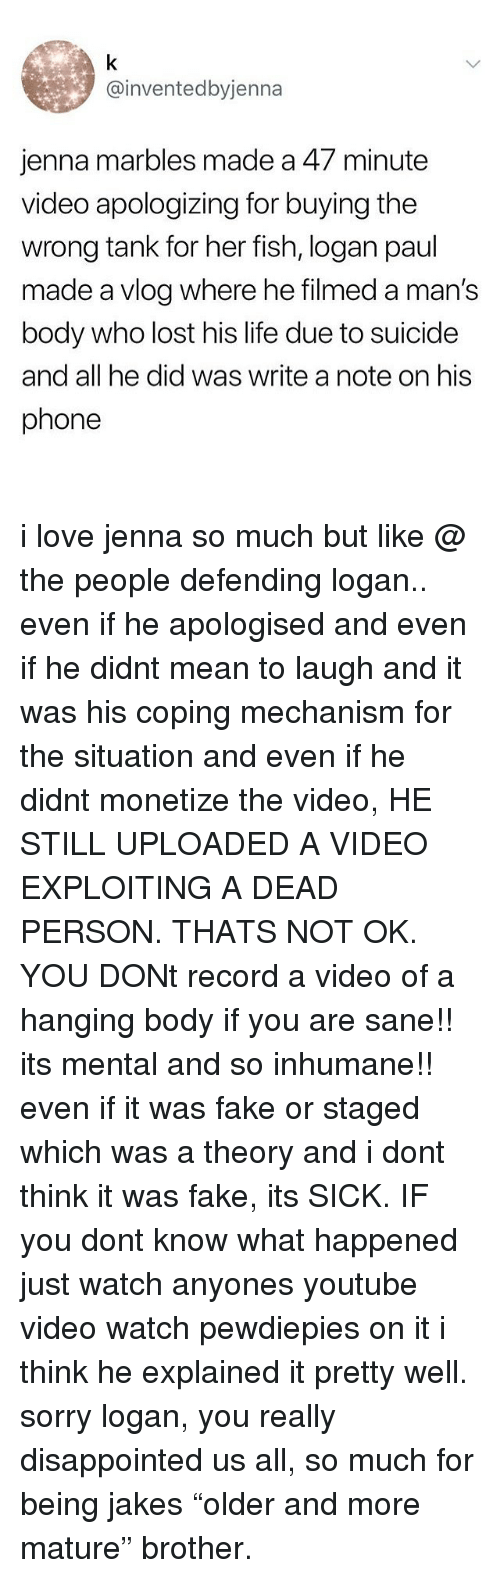 """Jakes: @inventedbyjenna  jenna marbles made a 47 minute  video apologizing for buying the  wrong tank for her fish, logan paul  made a vlog where he filmed a man's  body who lost his life due to suicide  and all he did was write a note on his  phone i love jenna so much but like @ the people defending logan.. even if he apologised and even if he didnt mean to laugh and it was his coping mechanism for the situation and even if he didnt monetize the video, HE STILL UPLOADED A VIDEO EXPLOITING A DEAD PERSON. THATS NOT OK. YOU DONt record a video of a hanging body if you are sane!! its mental and so inhumane!! even if it was fake or staged which was a theory and i dont think it was fake, its SICK. IF you dont know what happened just watch anyones youtube video watch pewdiepies on it i think he explained it pretty well. sorry logan, you really disappointed us all, so much for being jakes """"older and more mature"""" brother."""